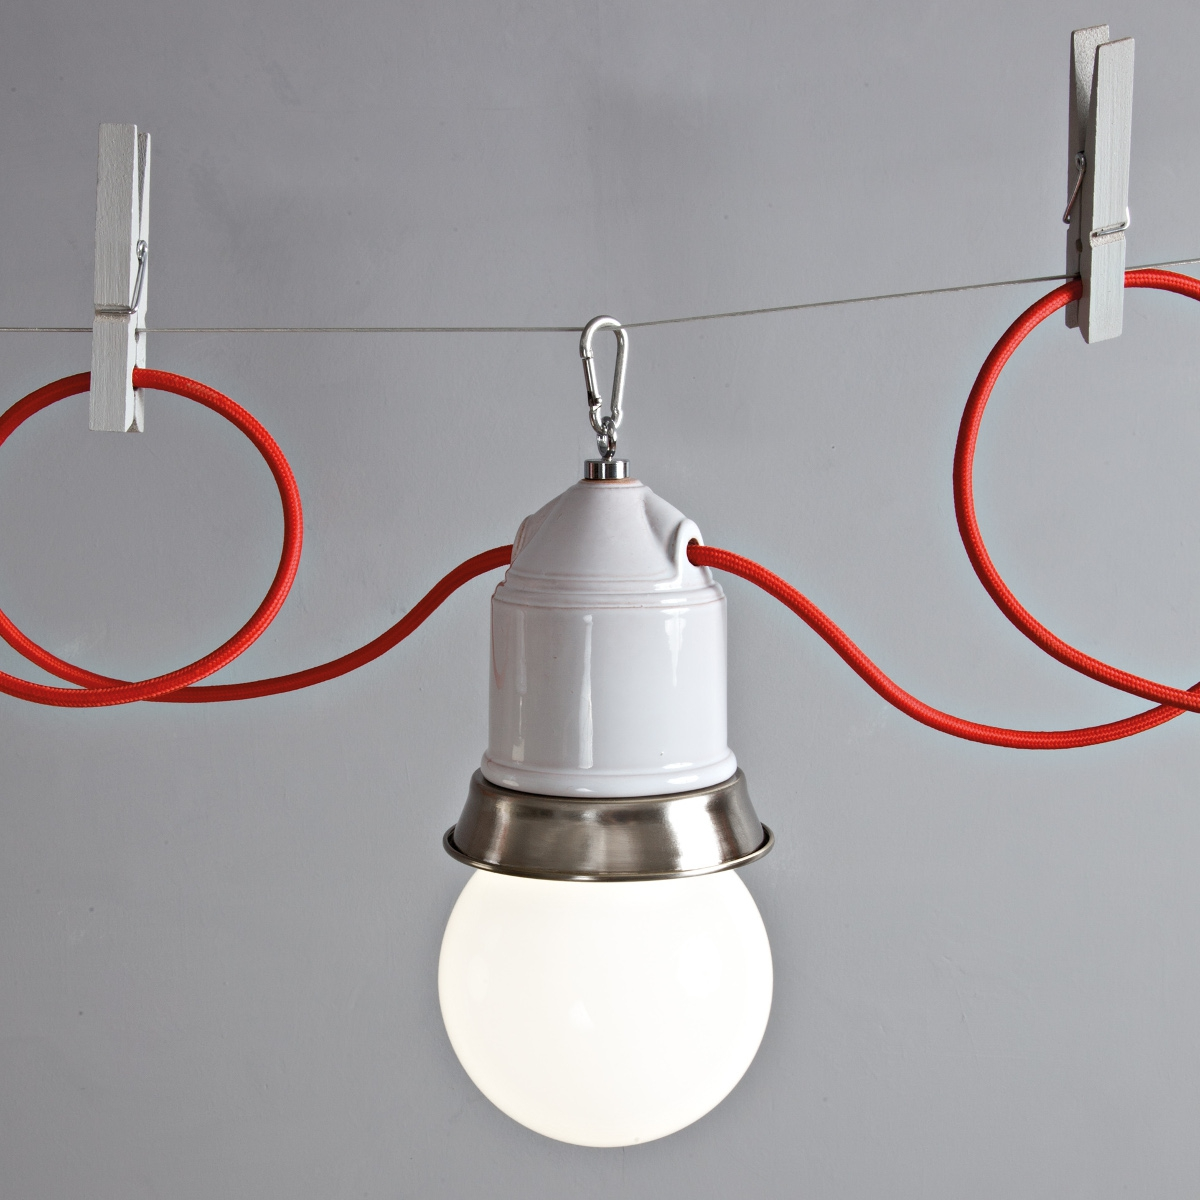 Eclairage Sur Cable Led Luminaire Suspension Cable Tendu